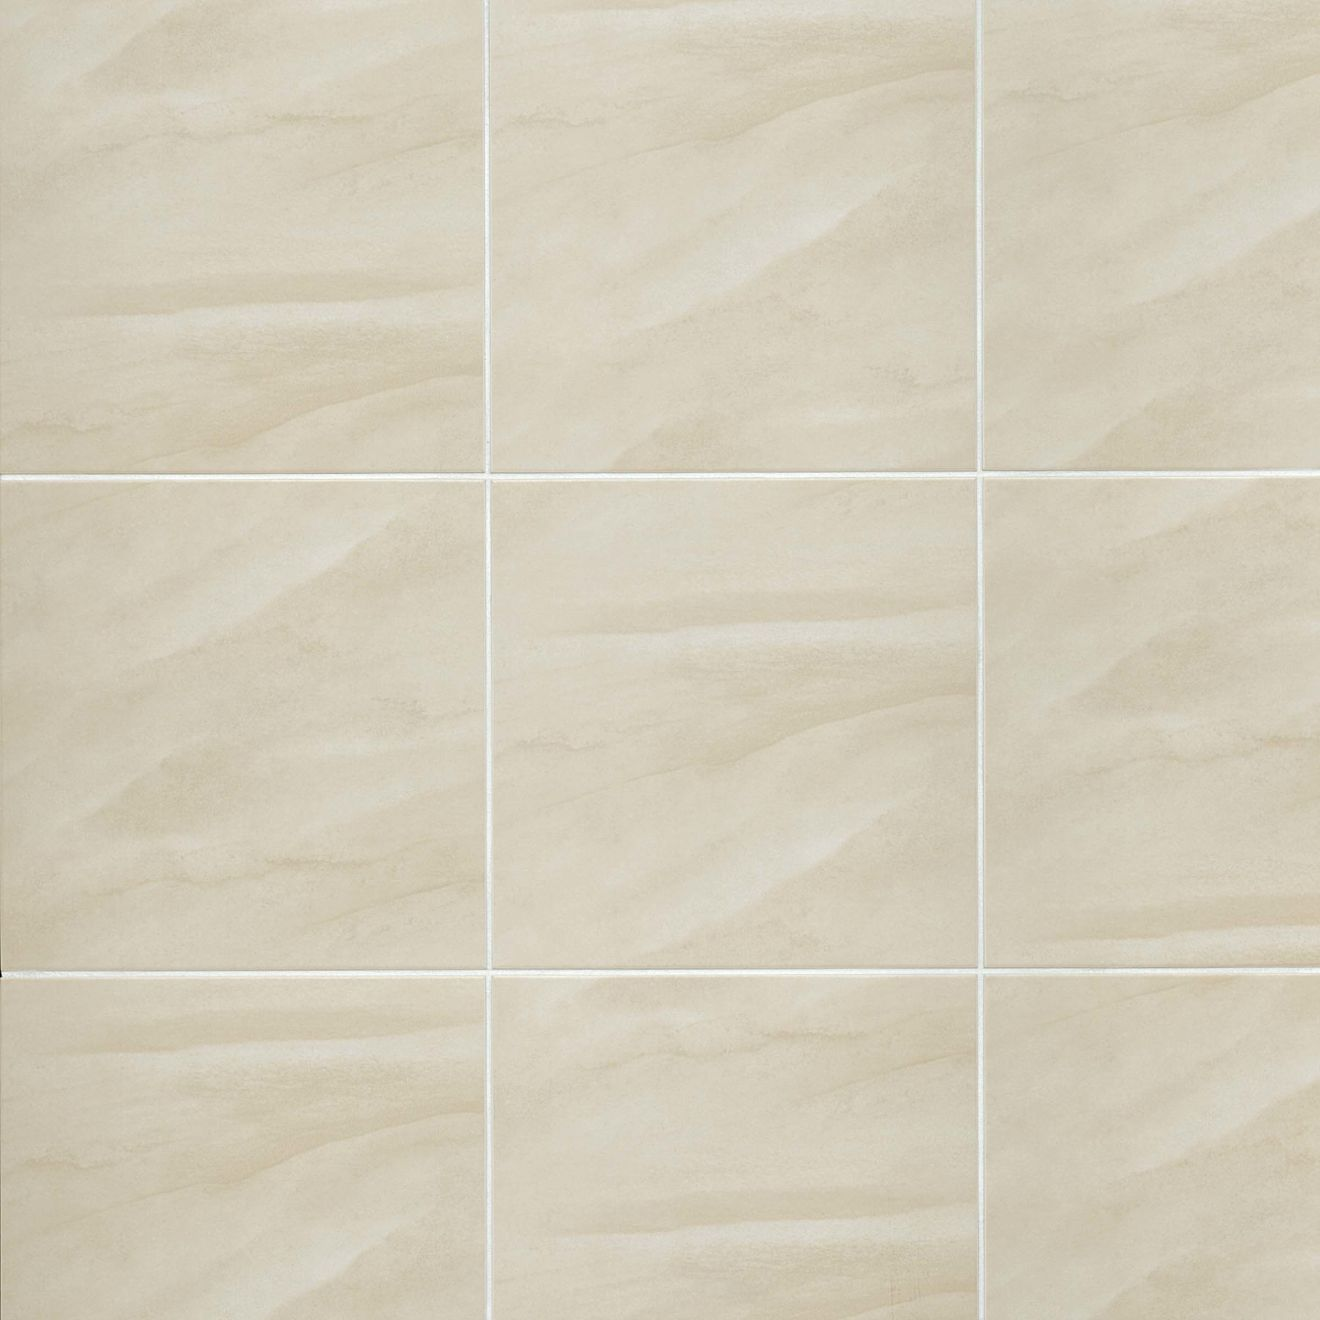 Serenity 18 X 18 X 516 Floor And Wall Tile In Beige